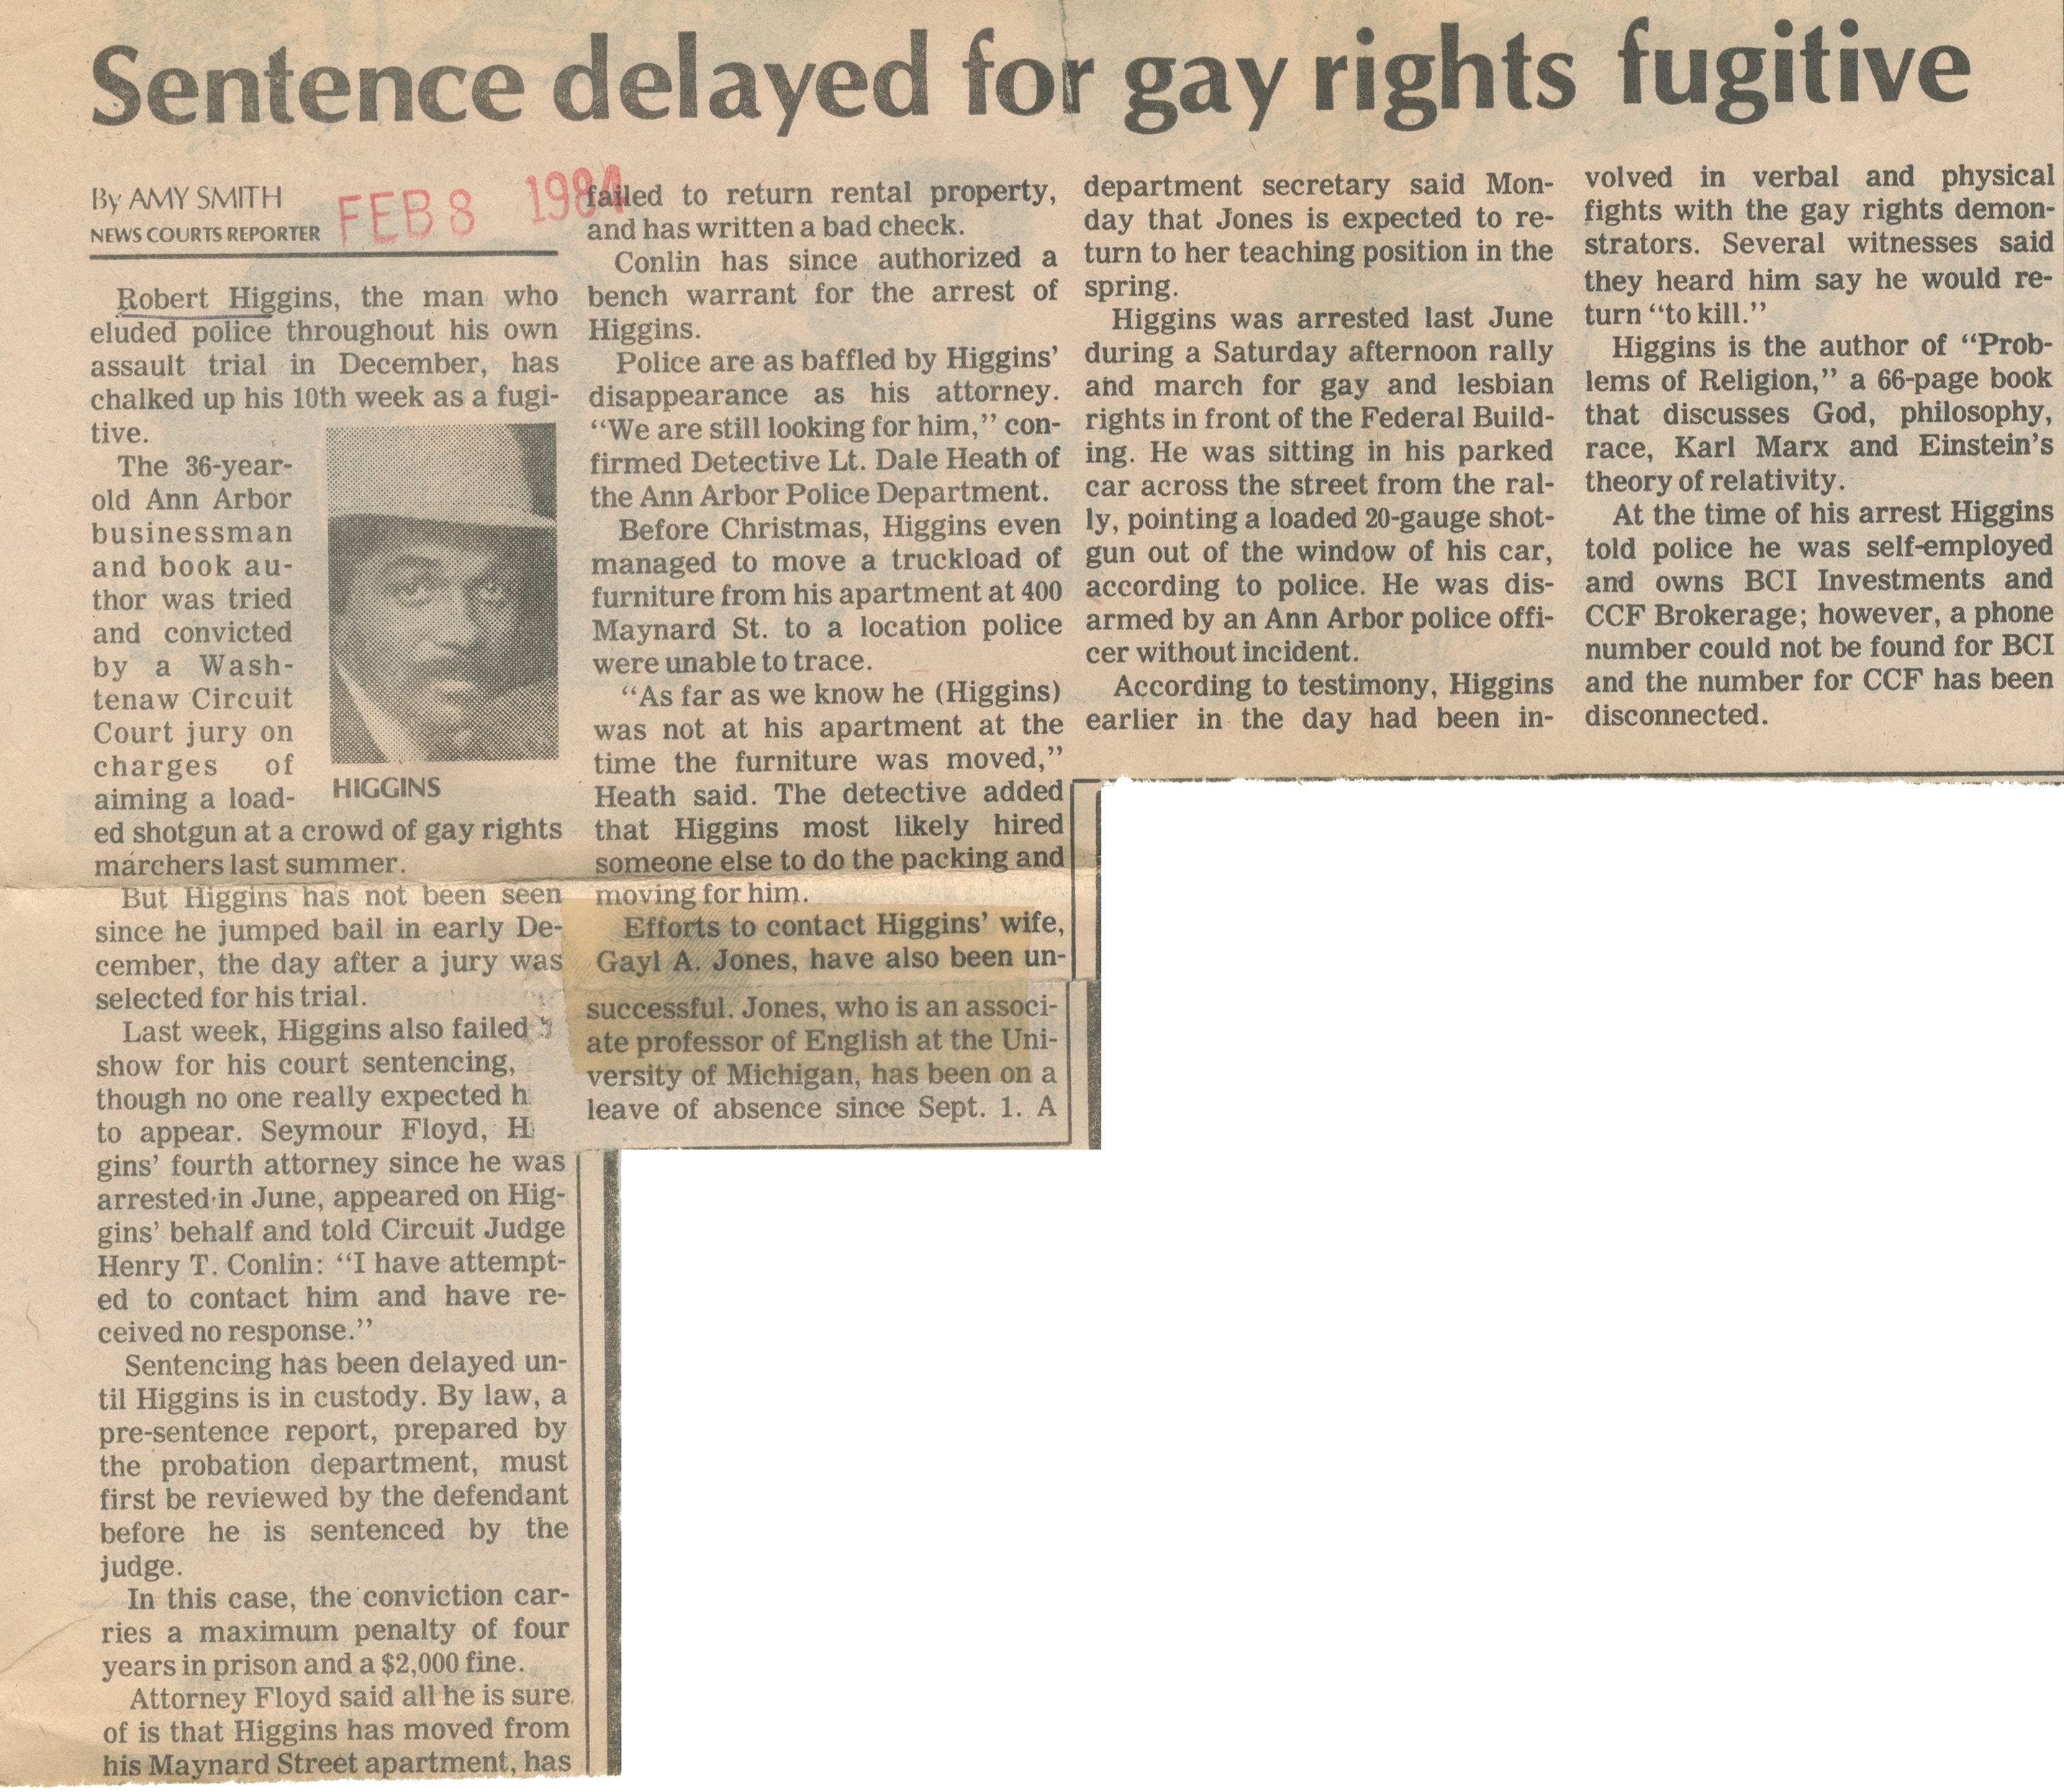 Sentence delayed for gay rights fugitive image